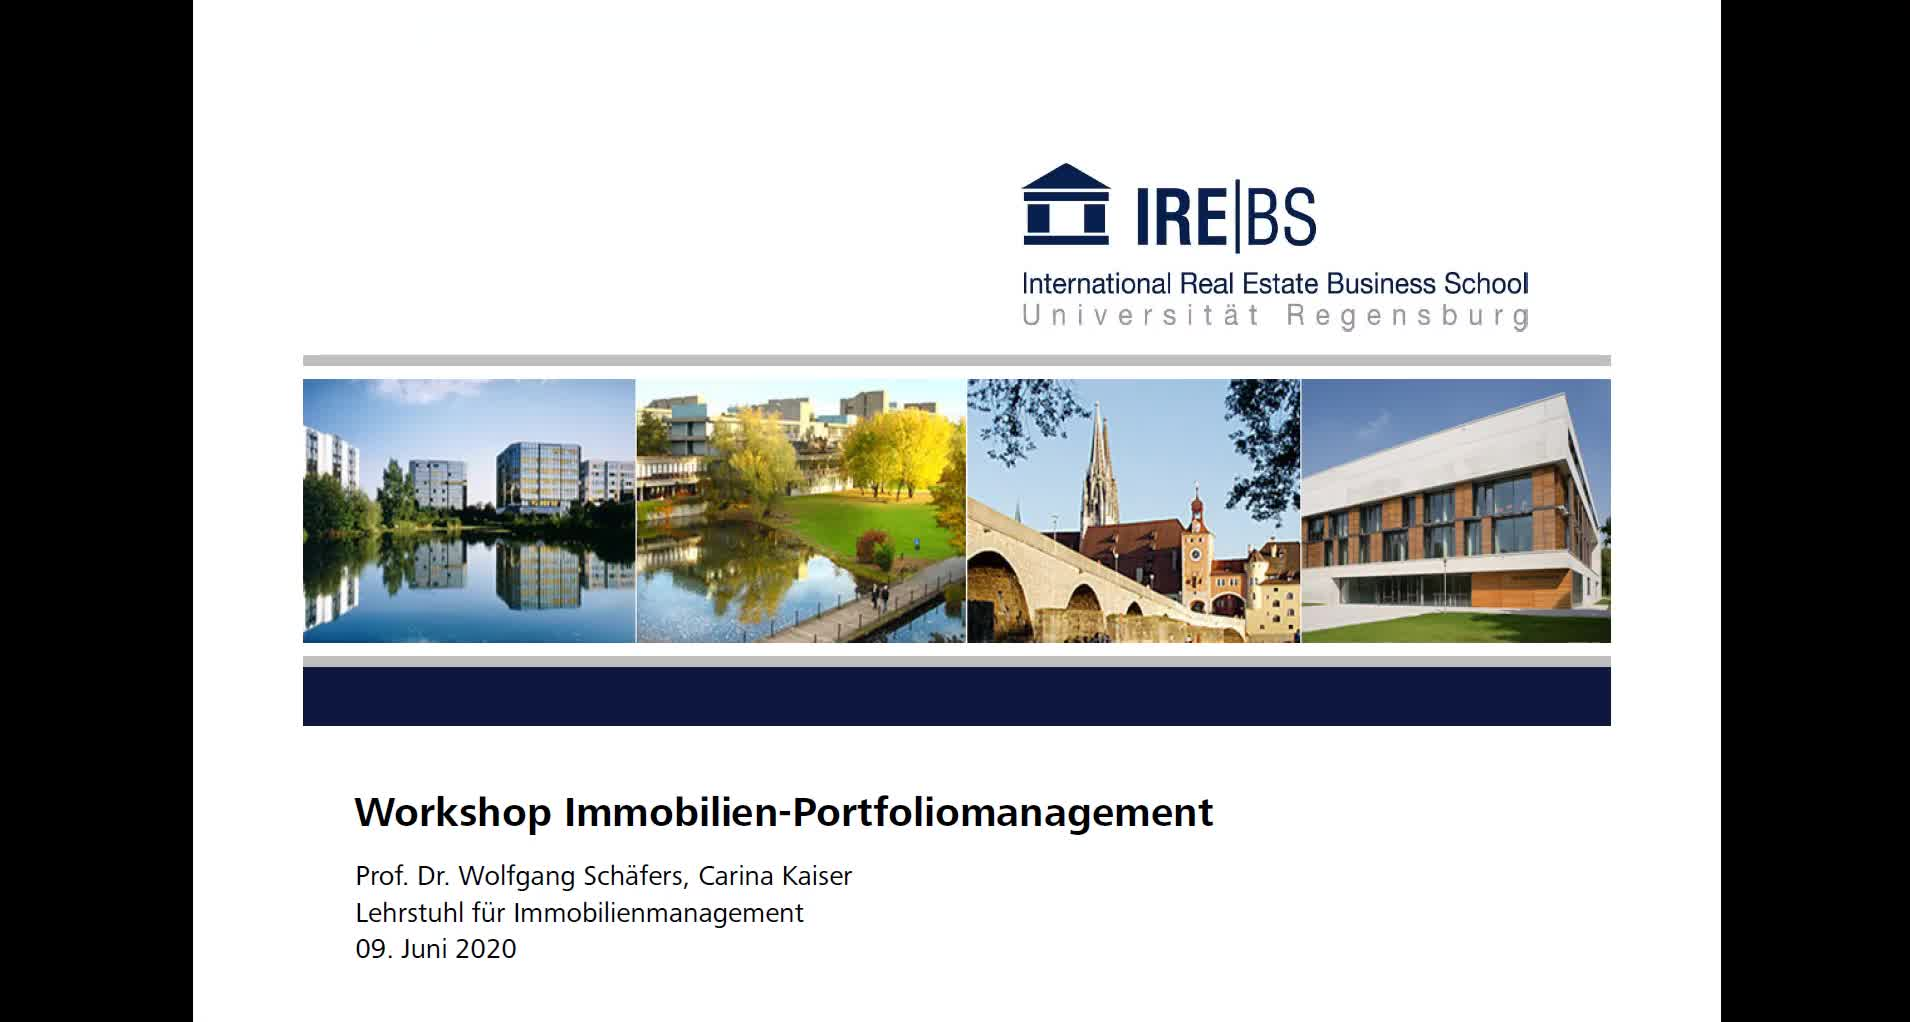 Workshop Immobilien-Portfoliomanagement